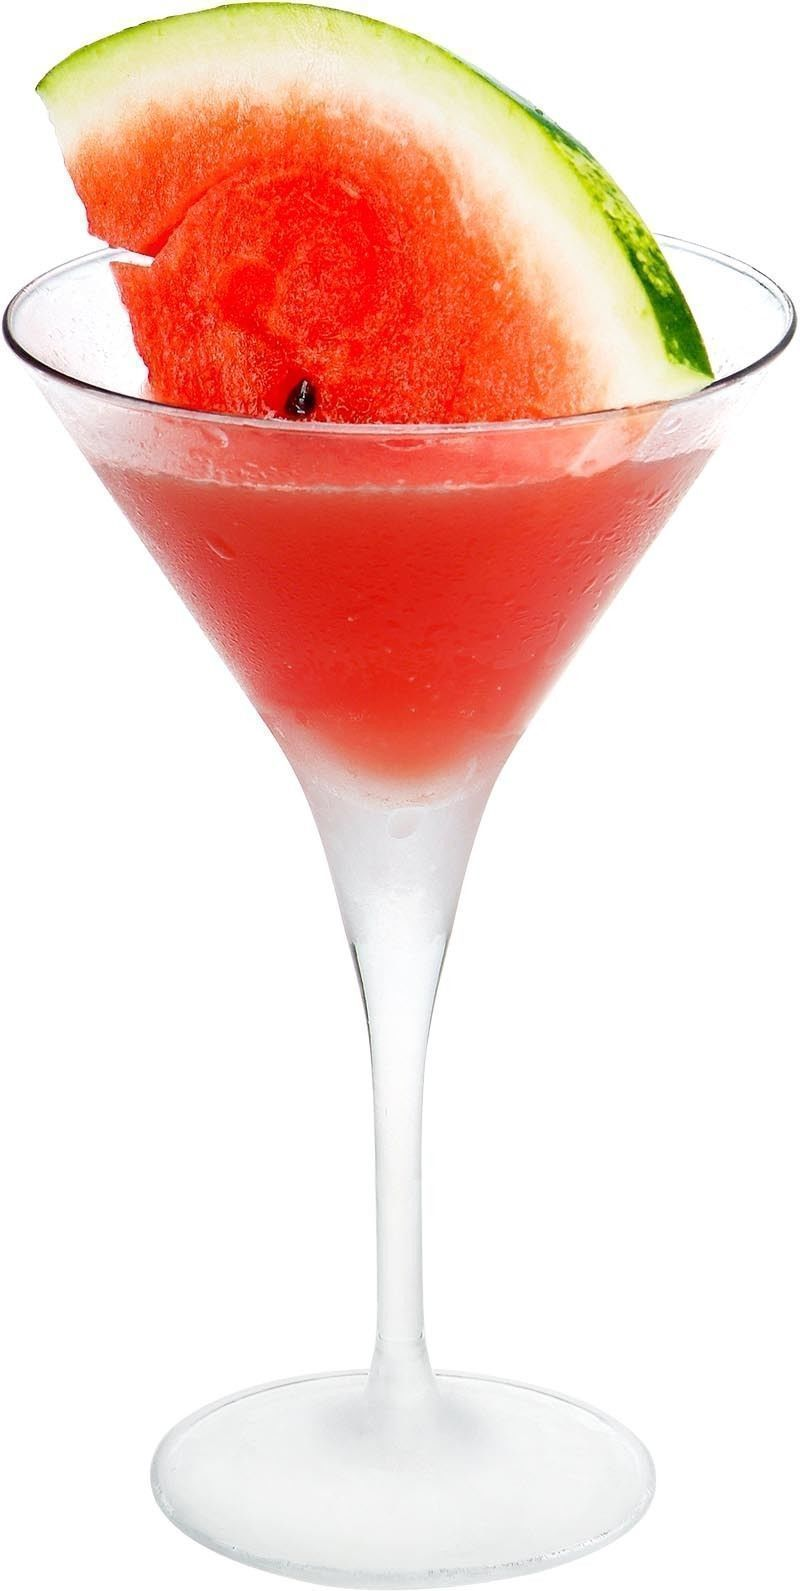 How to Make the Watermelon Tini